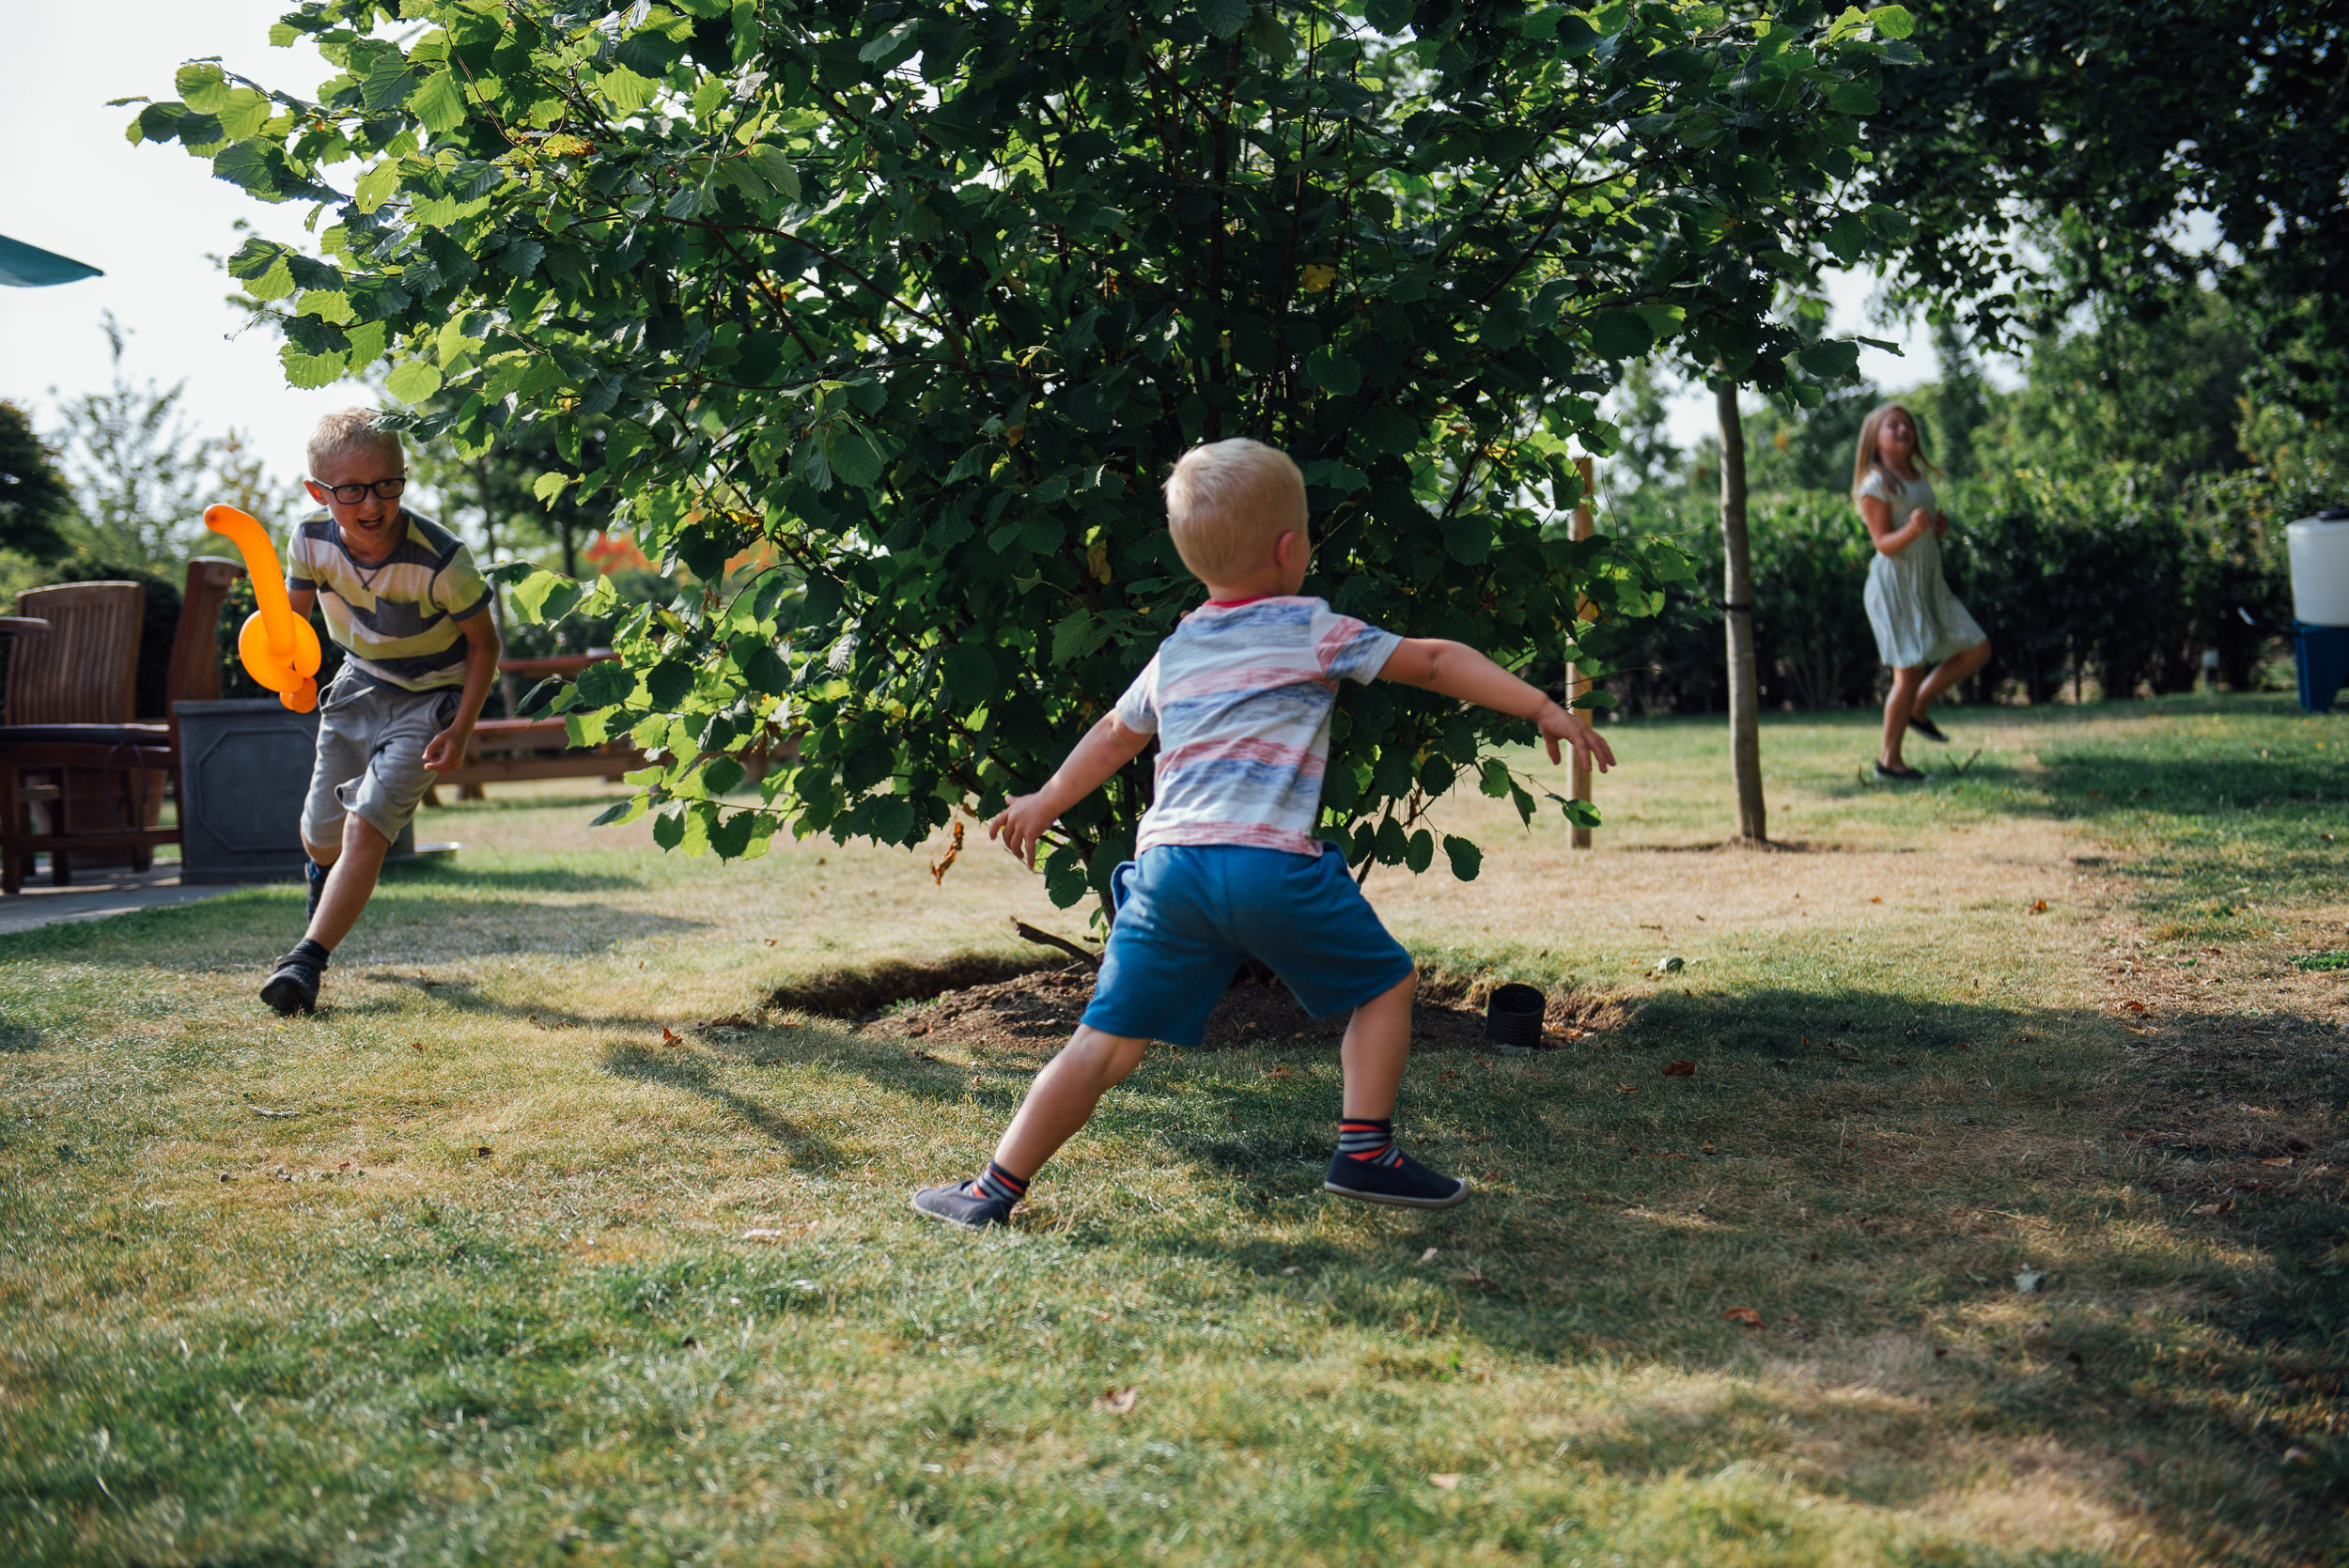 GARDEN_CHILDREN_PLAYING_LANDSCAPE_6.jpg